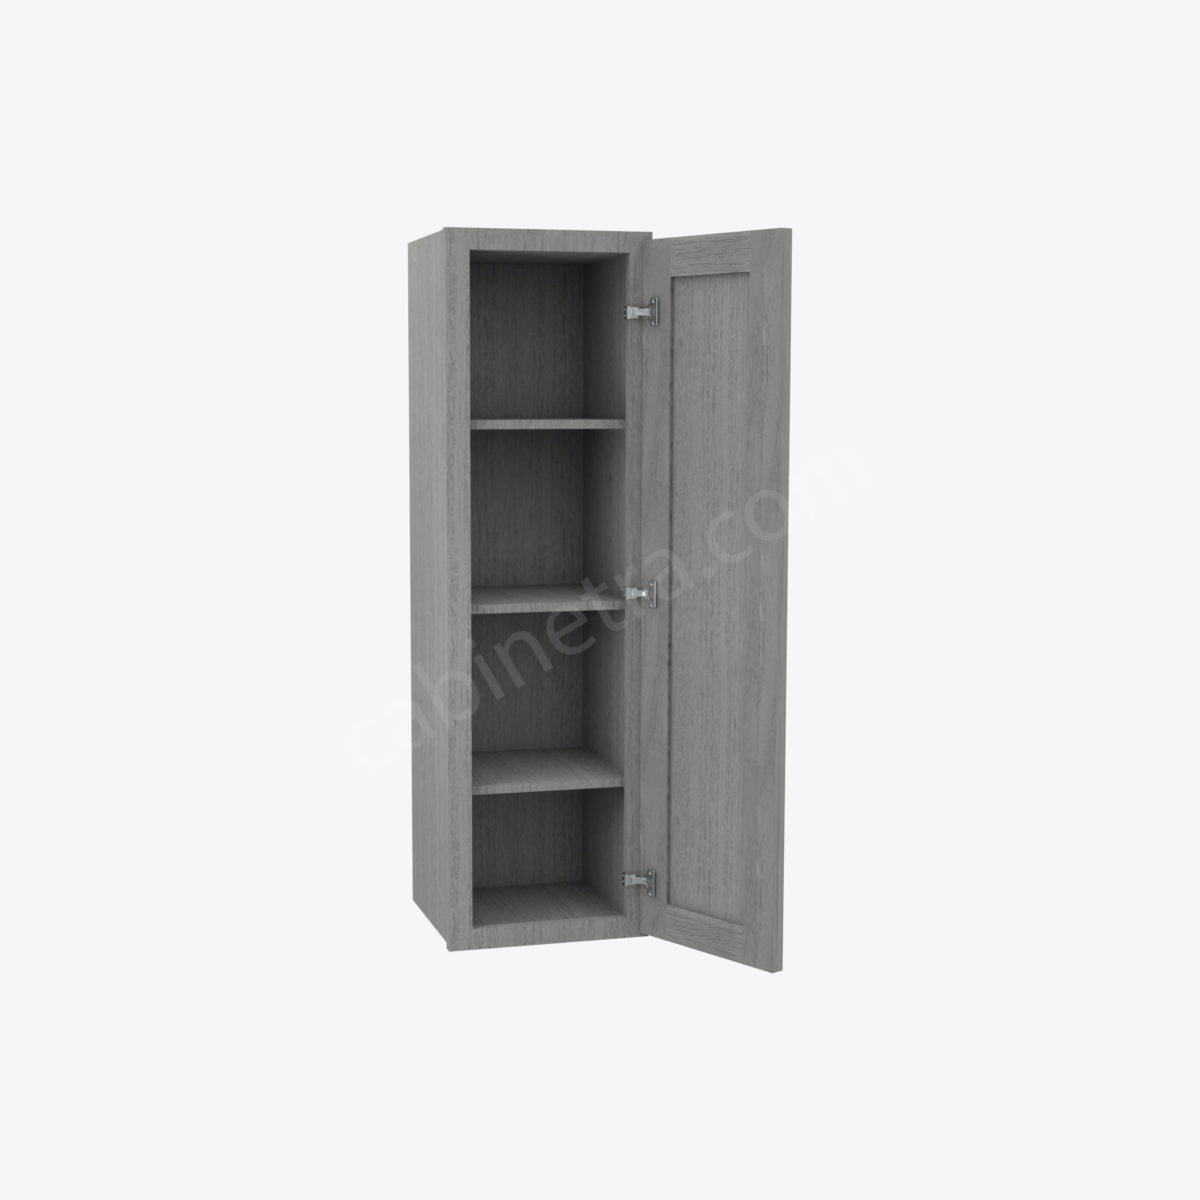 TG W1242 1 Forevermark Midtown Grey Cabinetra scaled